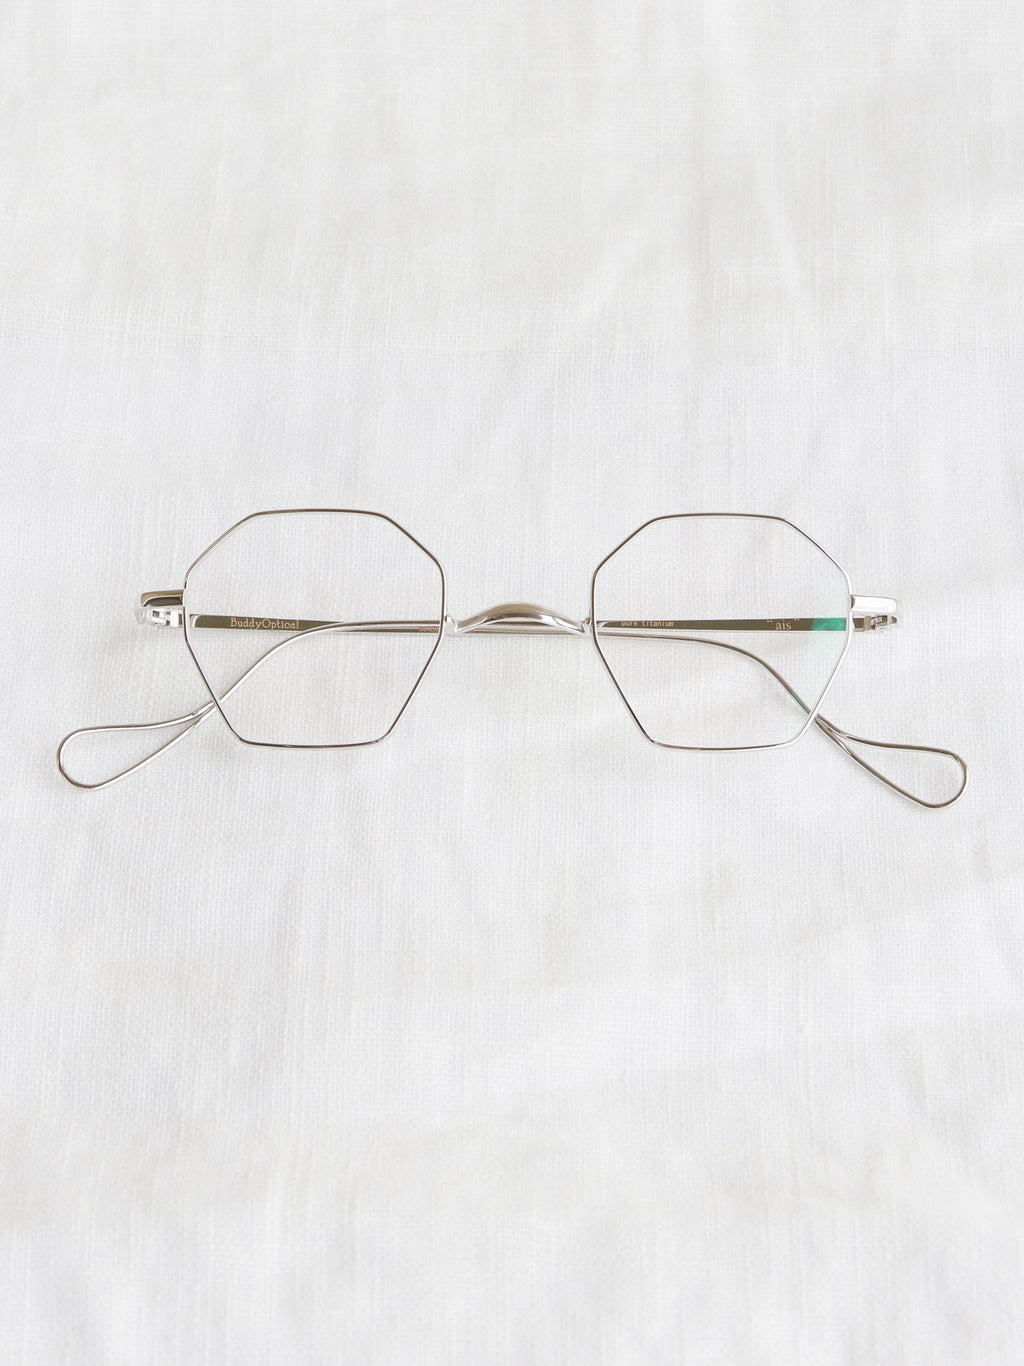 Namu Shop - Buddy Optical ais - Silver (re-stocked)